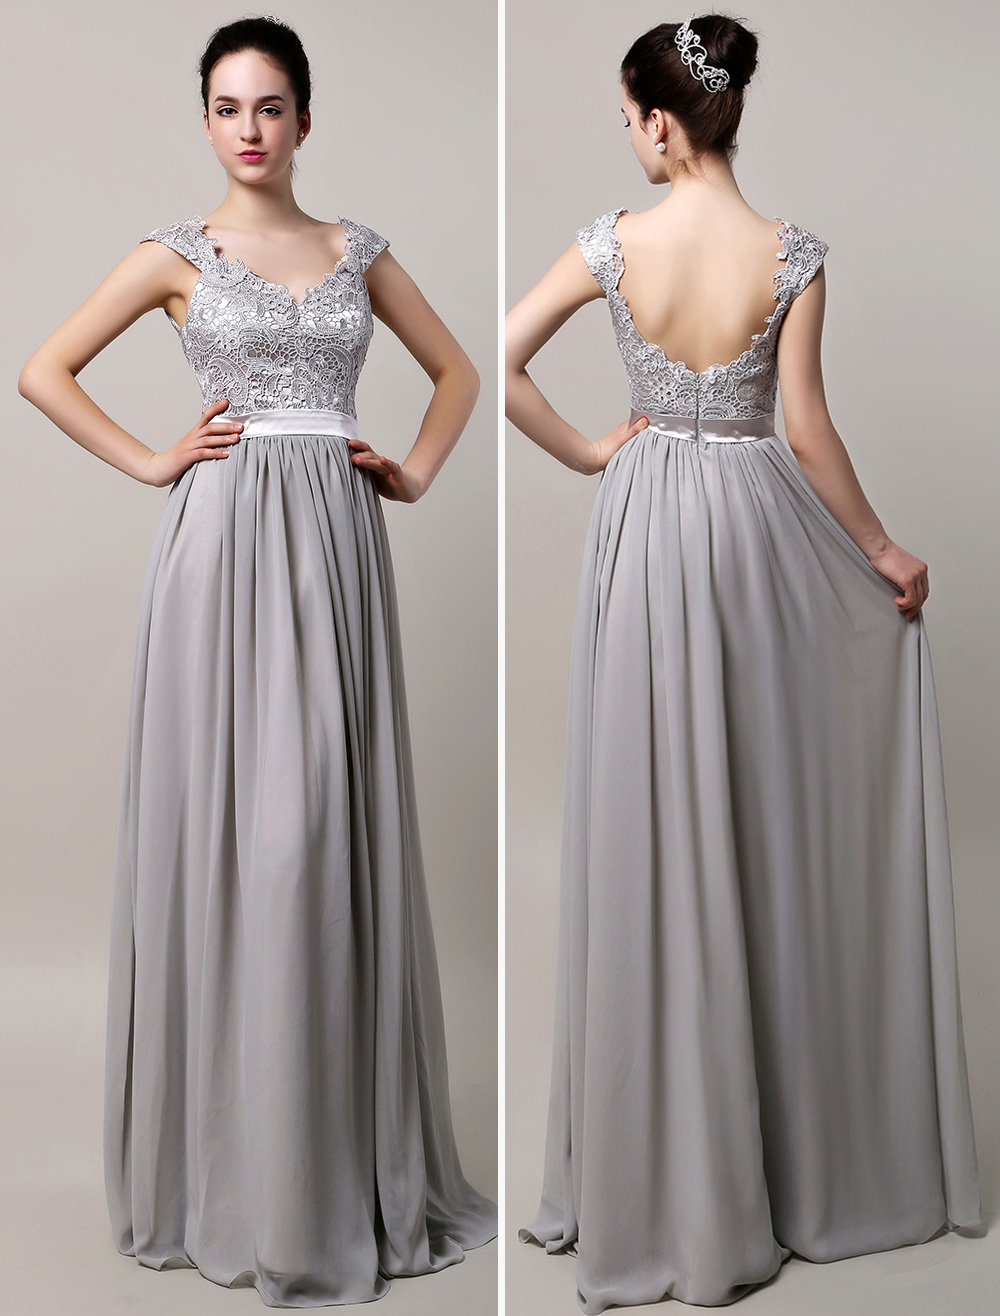 Silver Chiffon Evening Dress Lace Strapes Floor Length Party Dress V Neck Backless Prom Dress